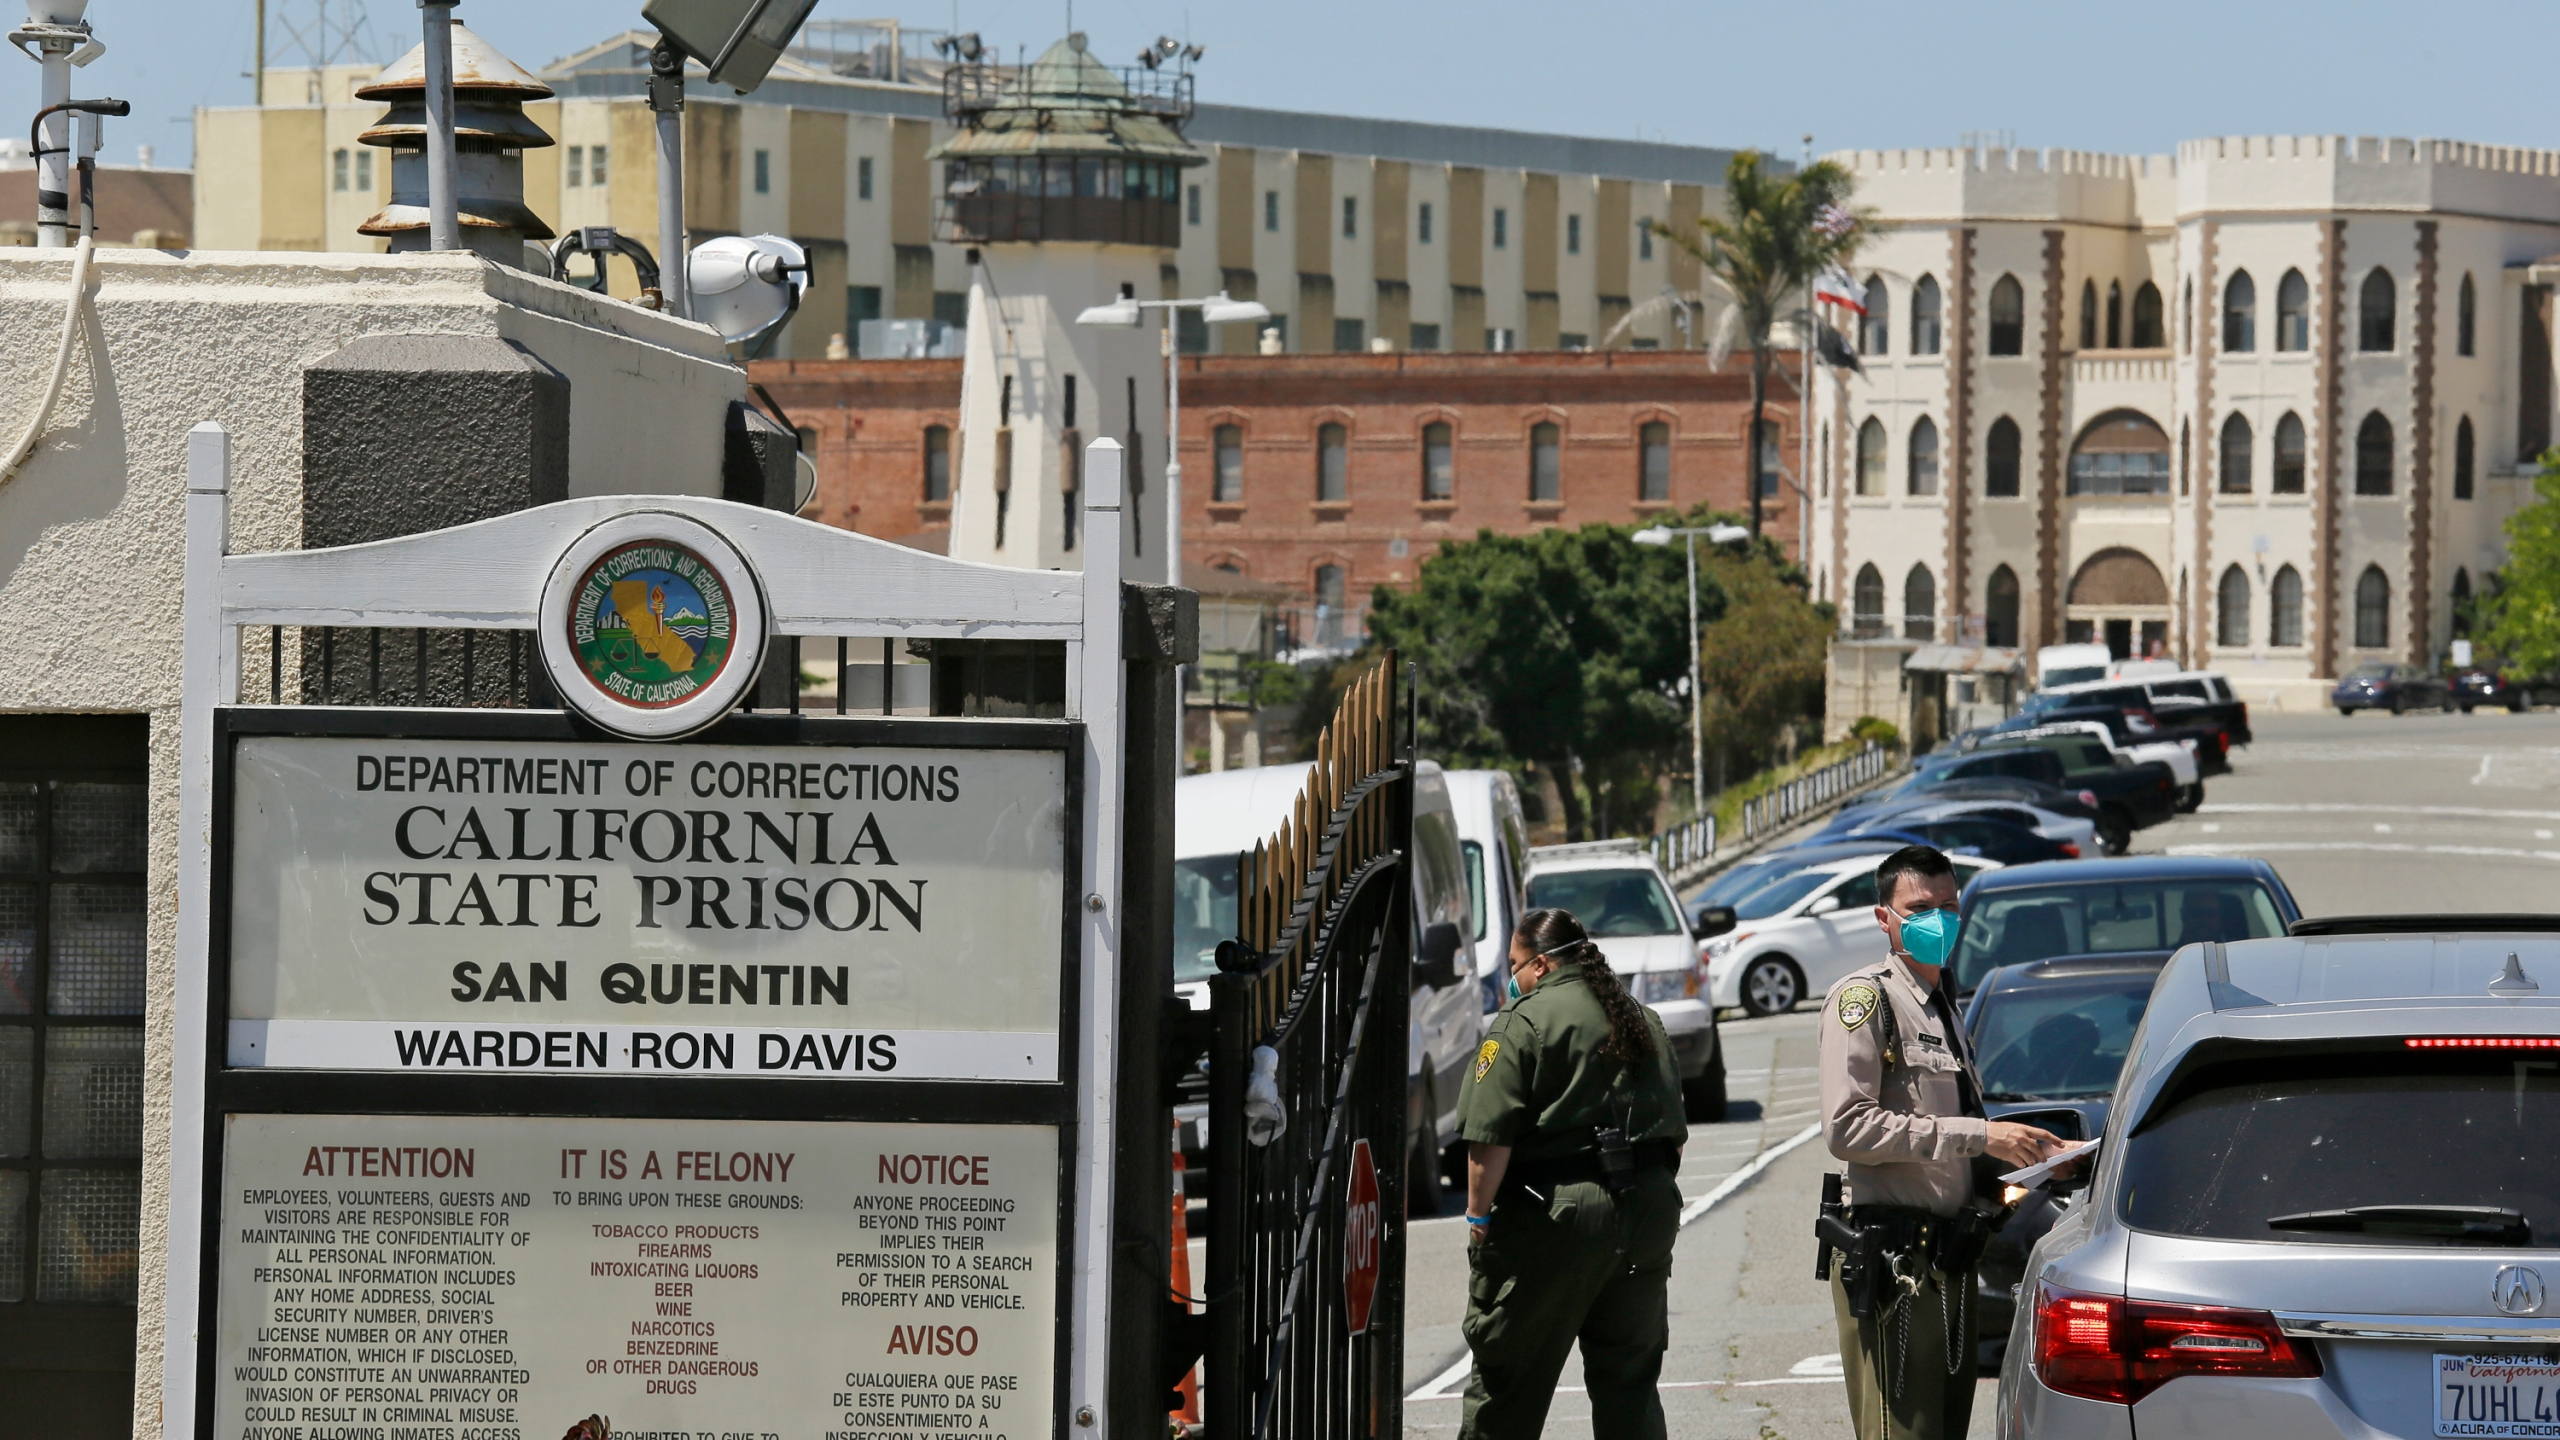 In this July 9, 2020 file photo a correctional officer checks a car entering the main gate of San Quentin State Prison, in San Quentin, Calif. California is mandating that some correctional officers at state and local facilities and detention centers to get vaccinated unless they qualify for a religious or medical exemption. (AP Photo/Eric Risberg,File)